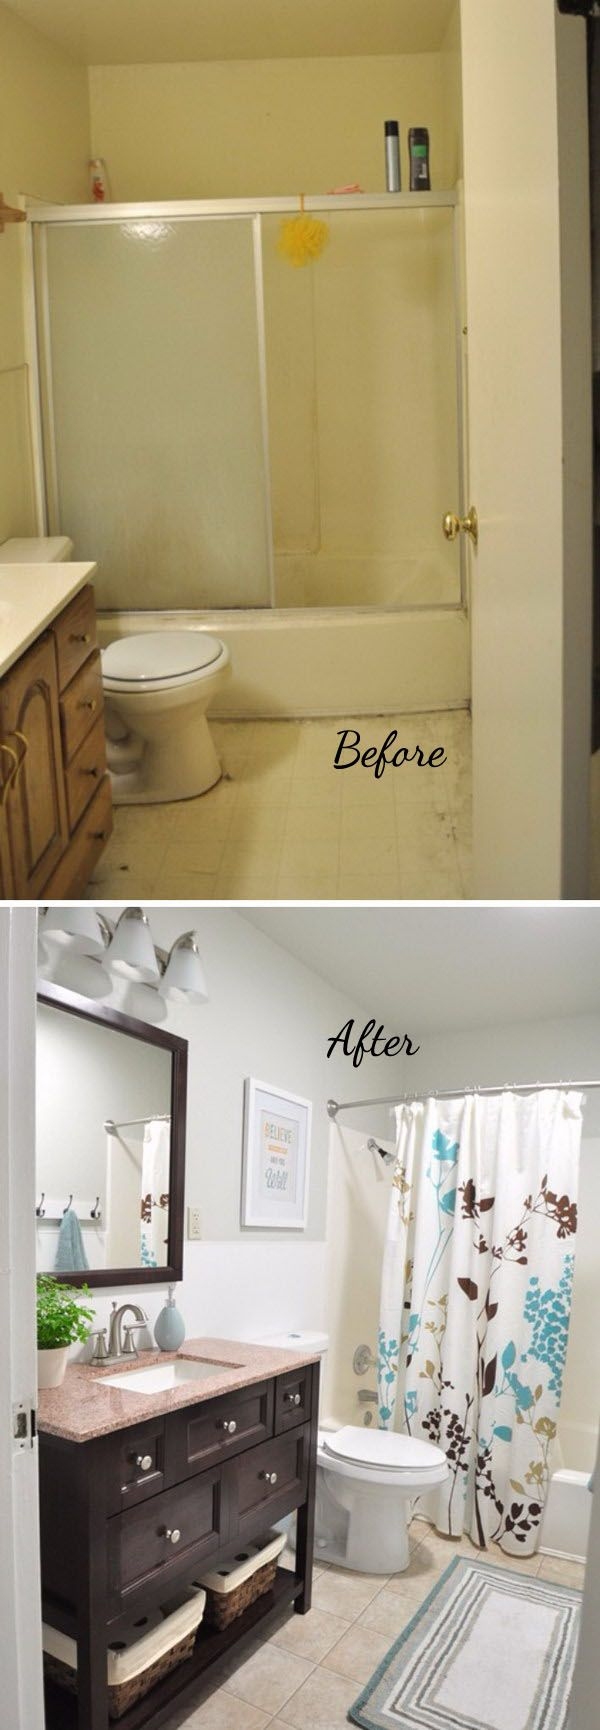 before and after 20 awesome bathroom makeovers diy on bathroom renovation ideas diy id=94137